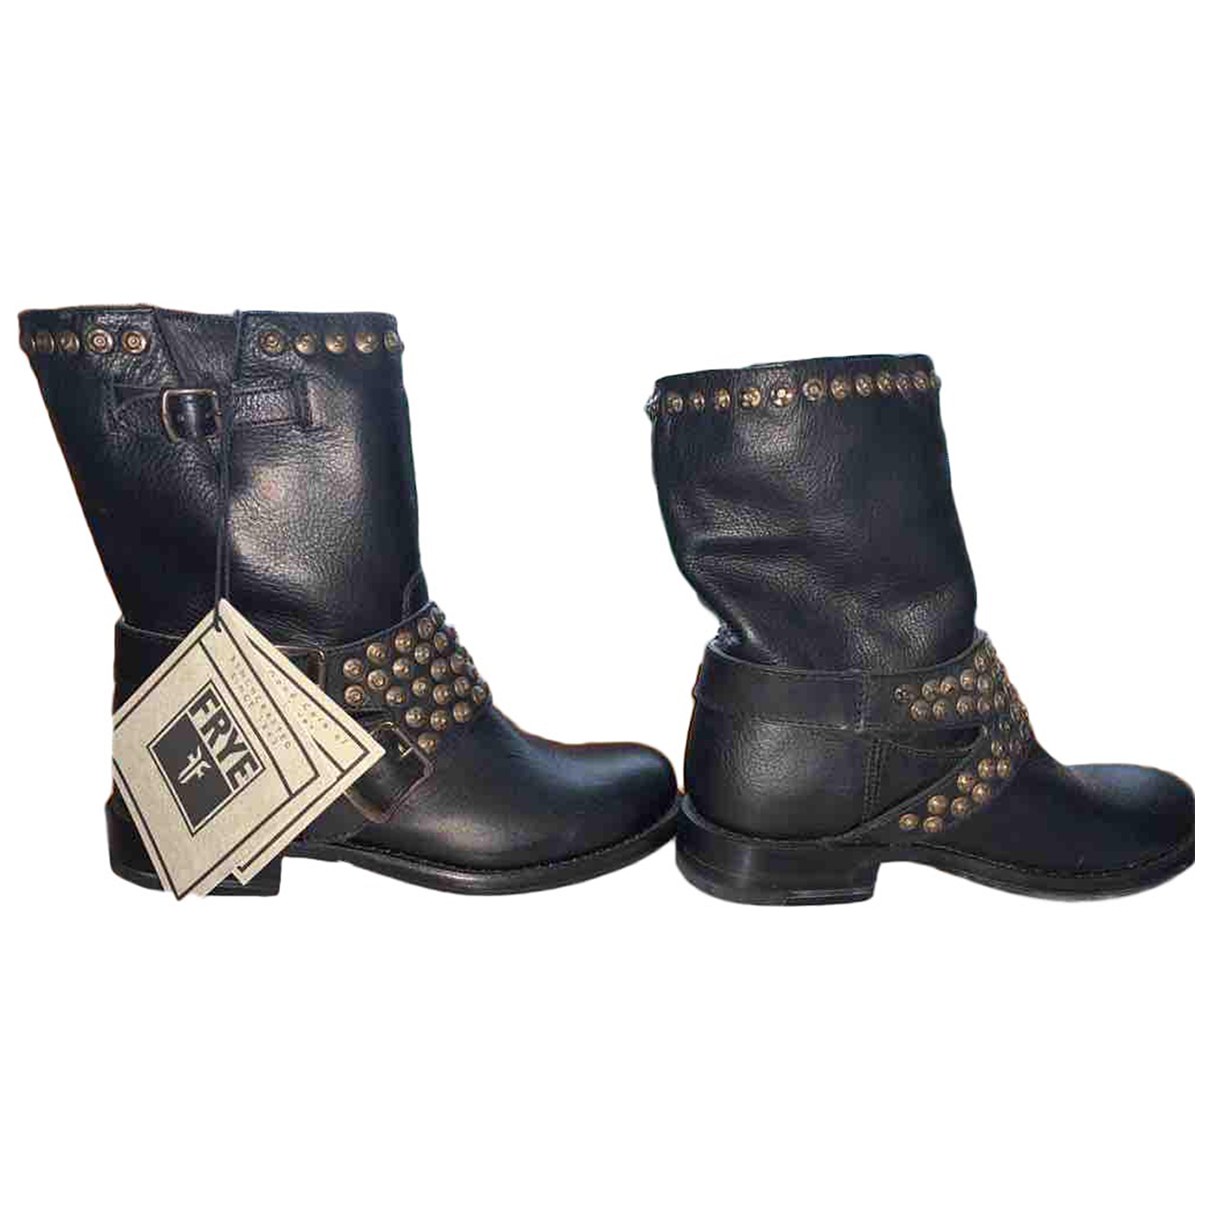 Frye N Black Leather Boots for Women 36 EU